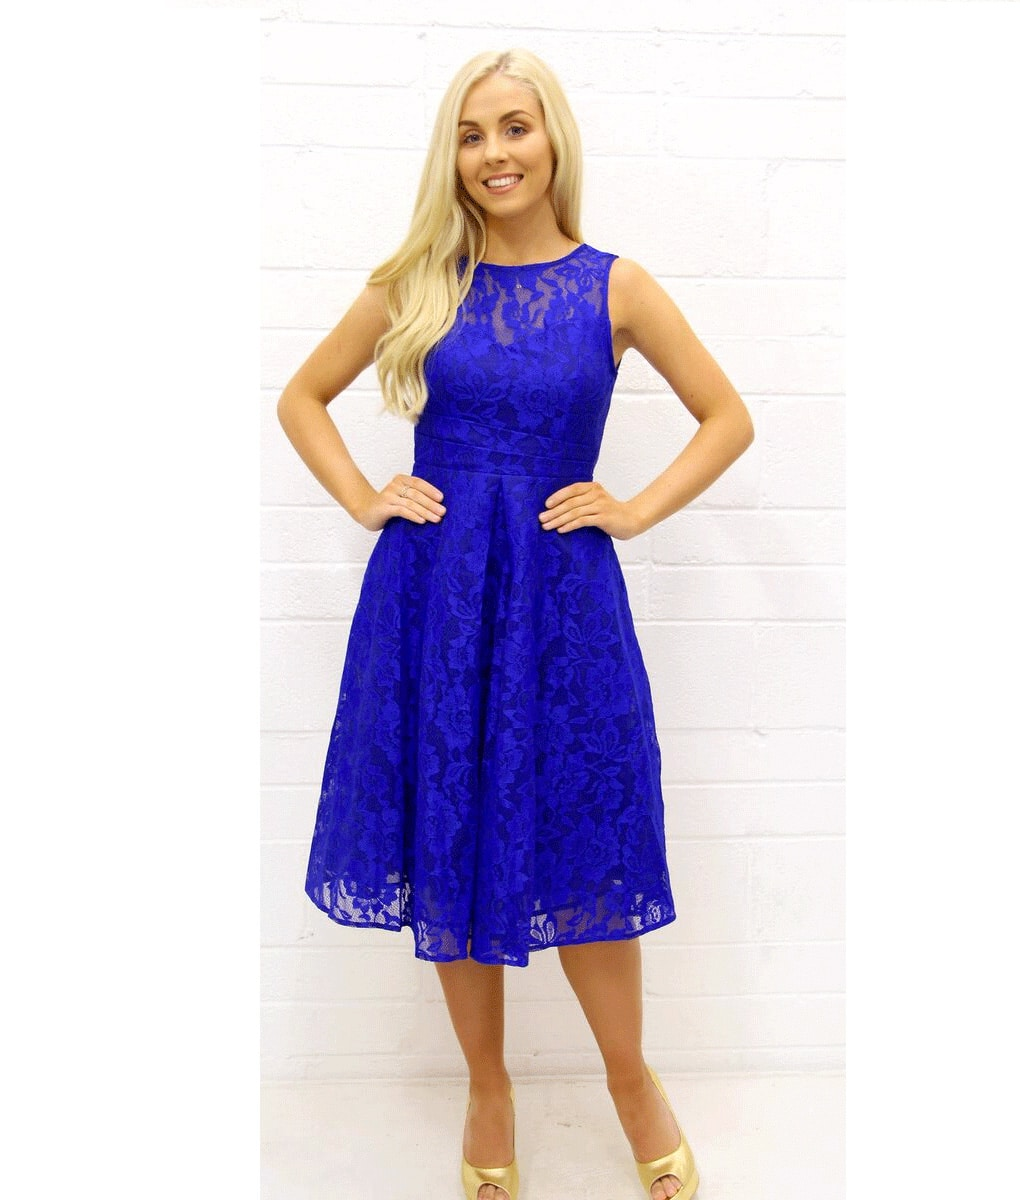 ELECTRIC-Blue-Jolie-Moi-lace-dress-with-pockets-Alila